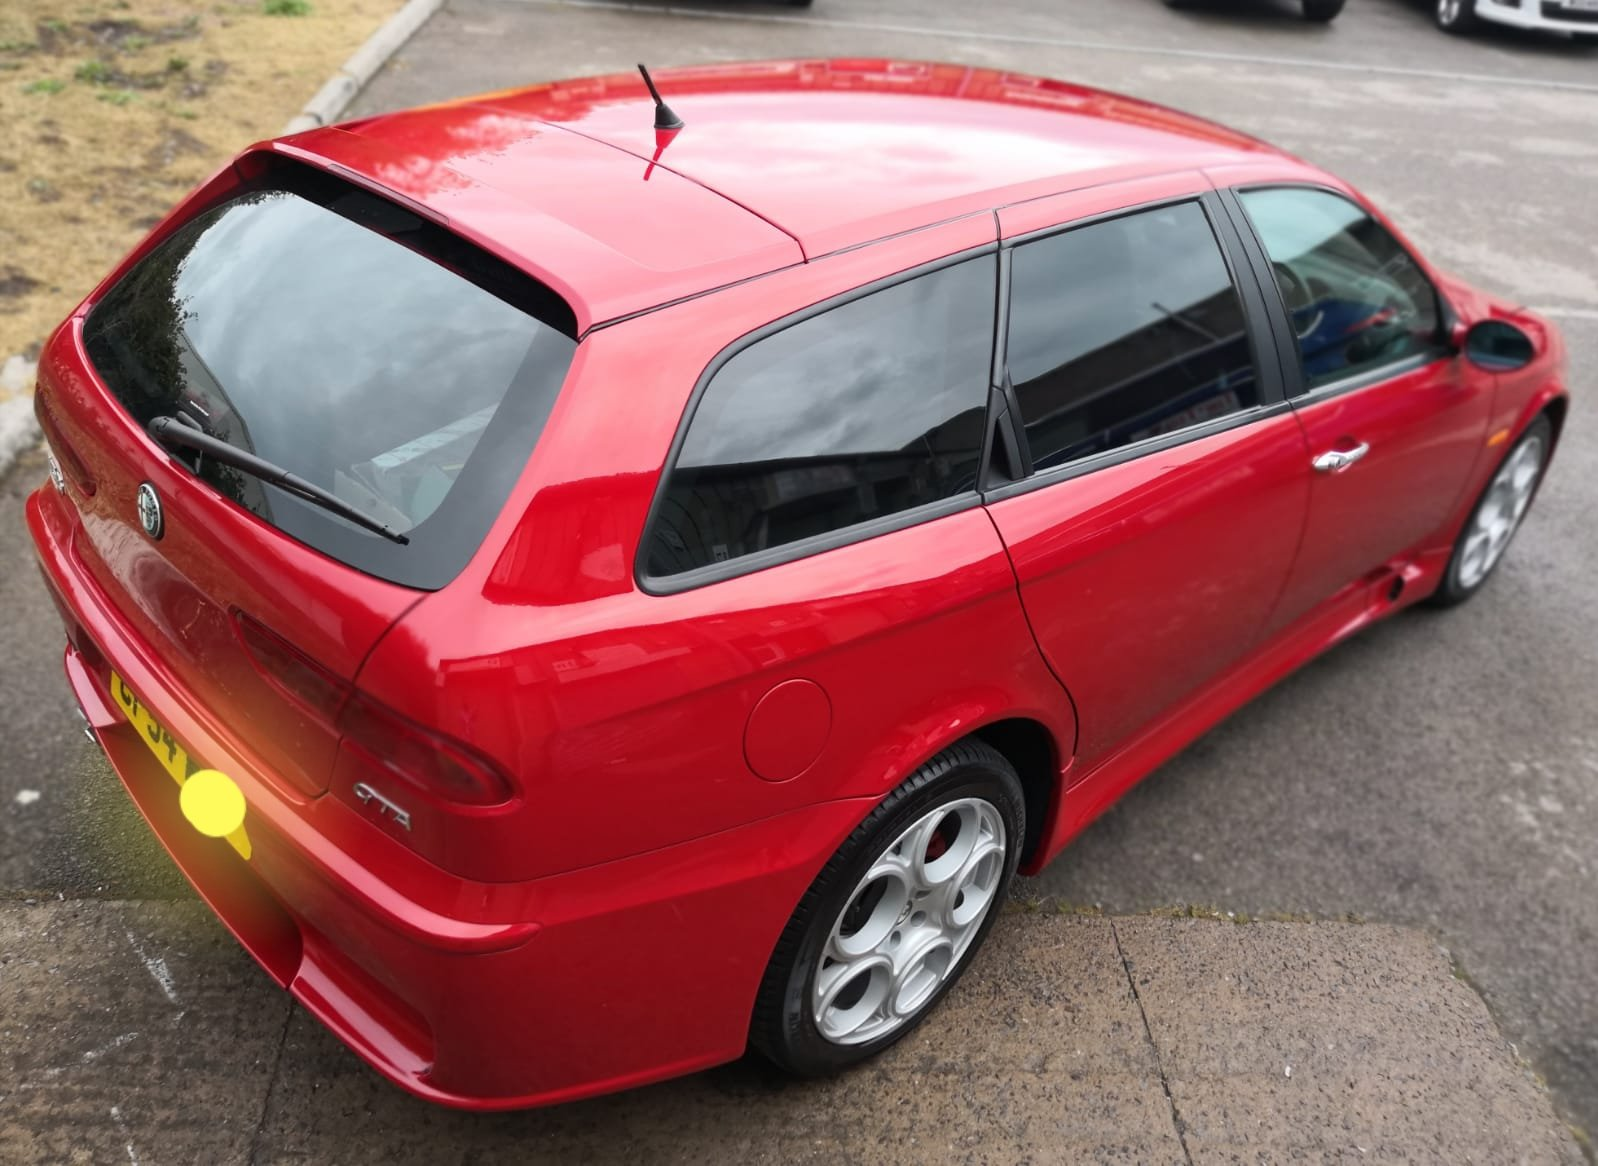 2005 Alfa Romeo 156 GTA Japanese import rust free SOLD (picture 2 of 6)